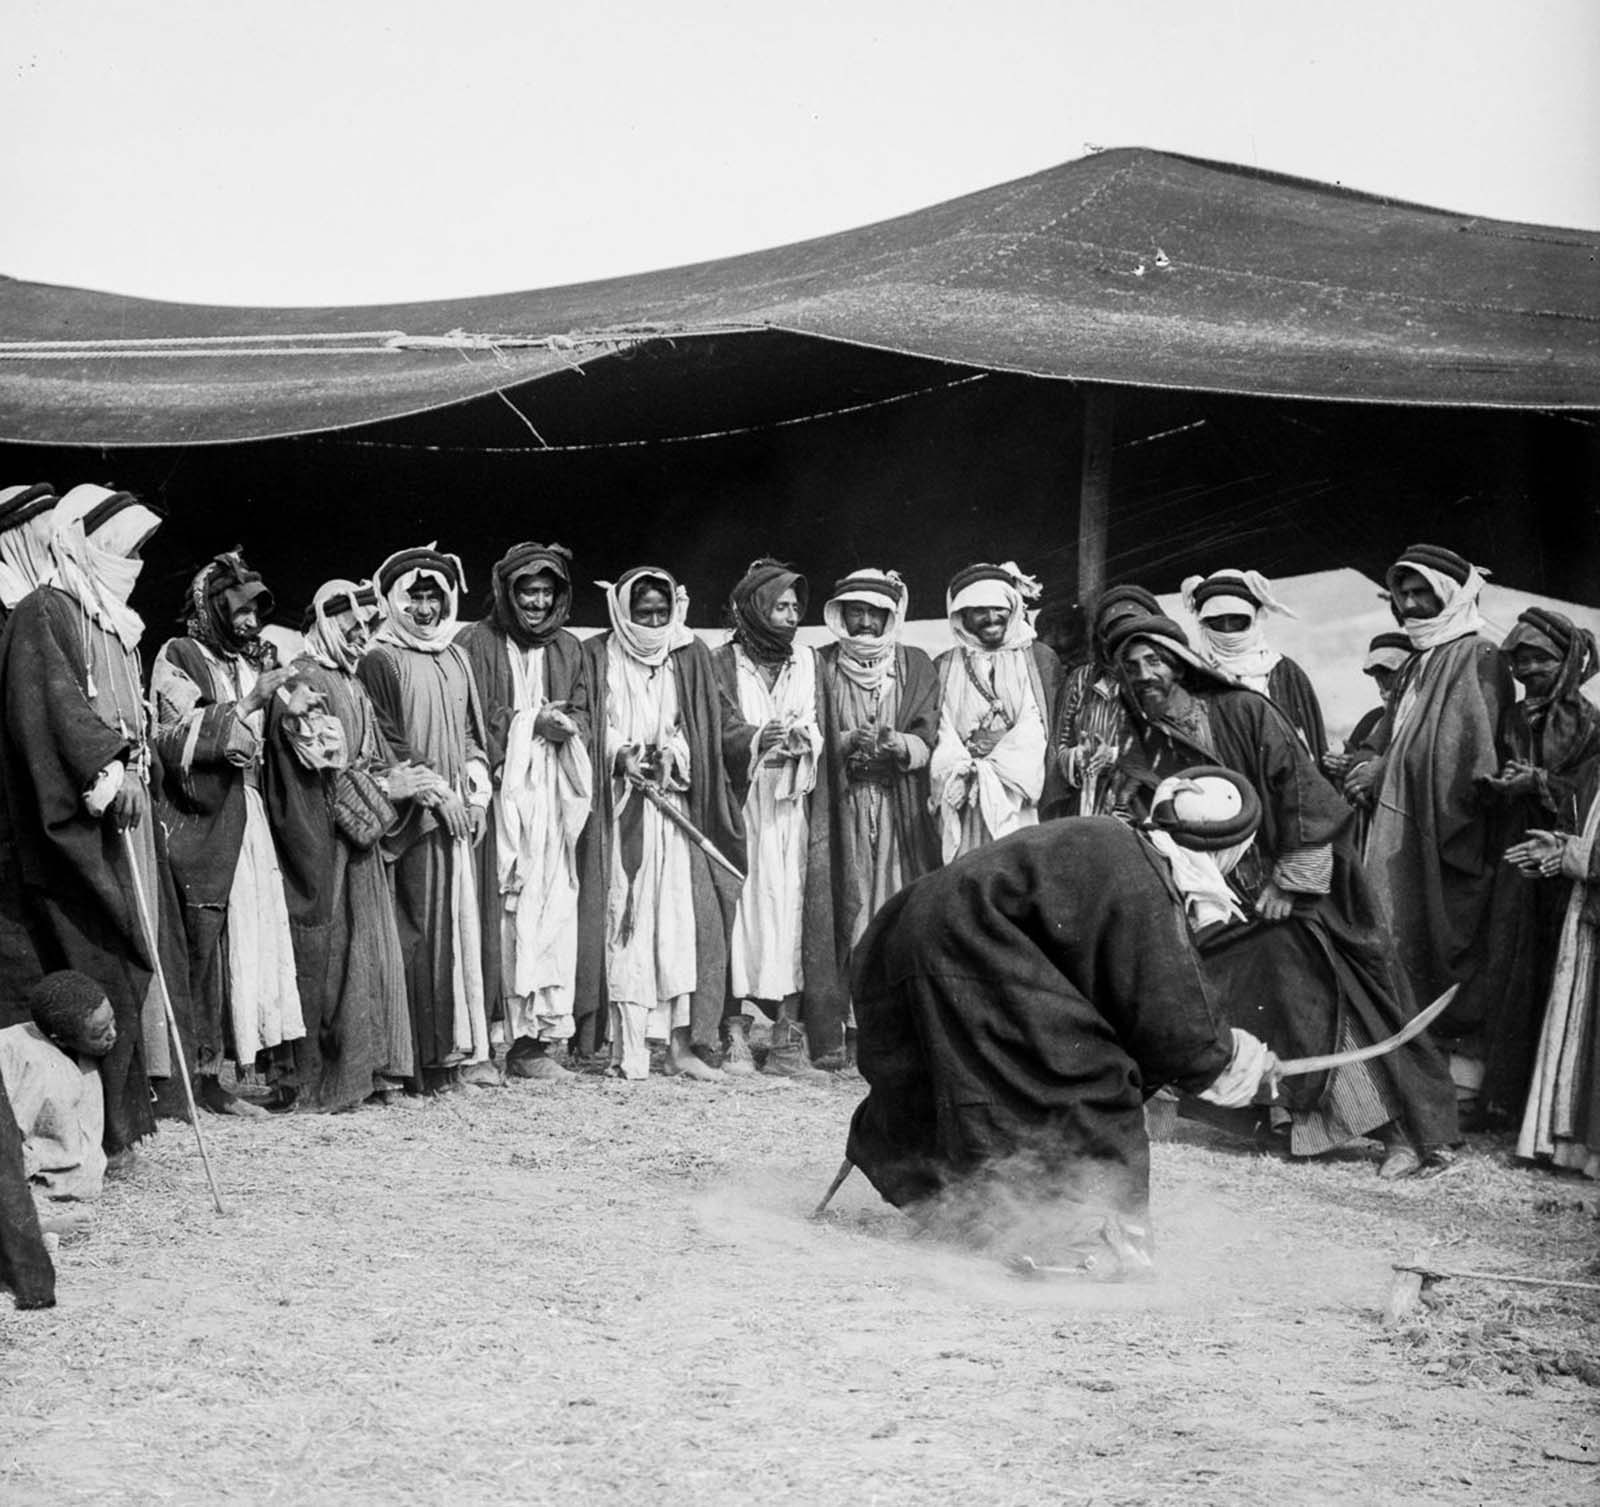 Men perform a sword dance at a wedding.